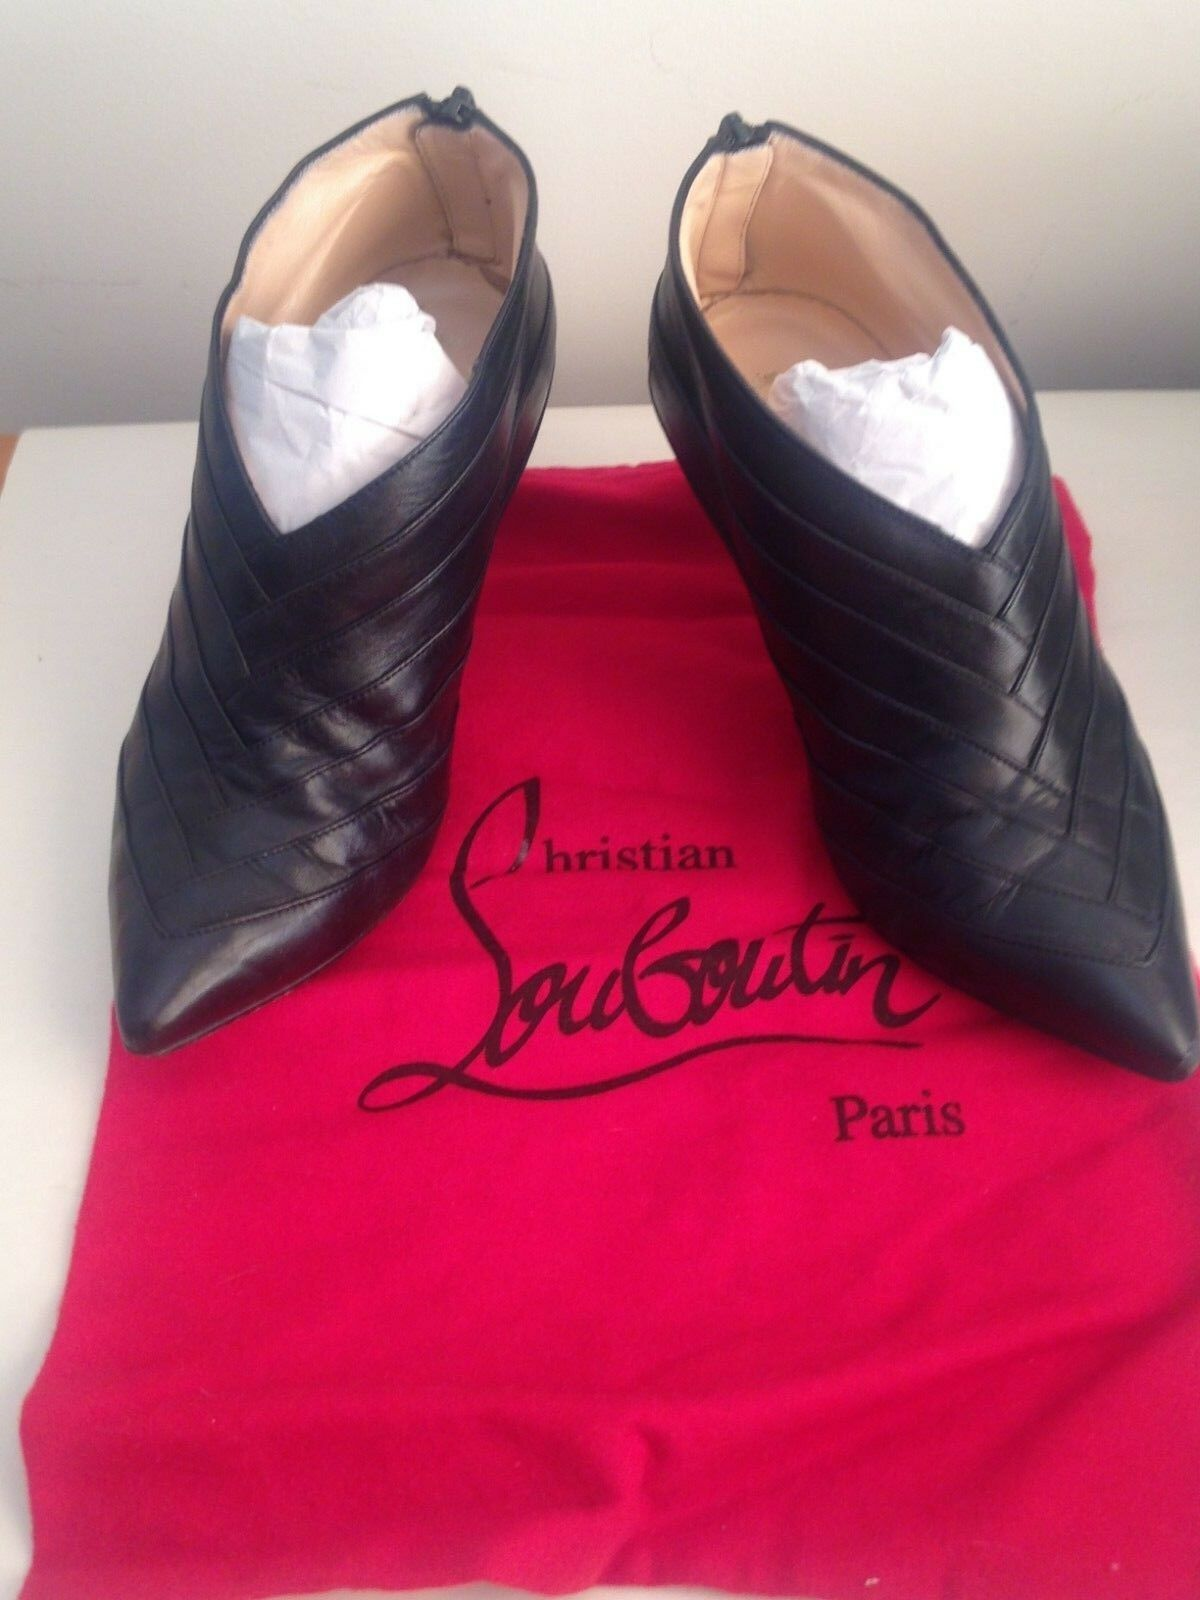 Christian Louboutin Cajole Black Nappa Leather Ankle Boots 3 36